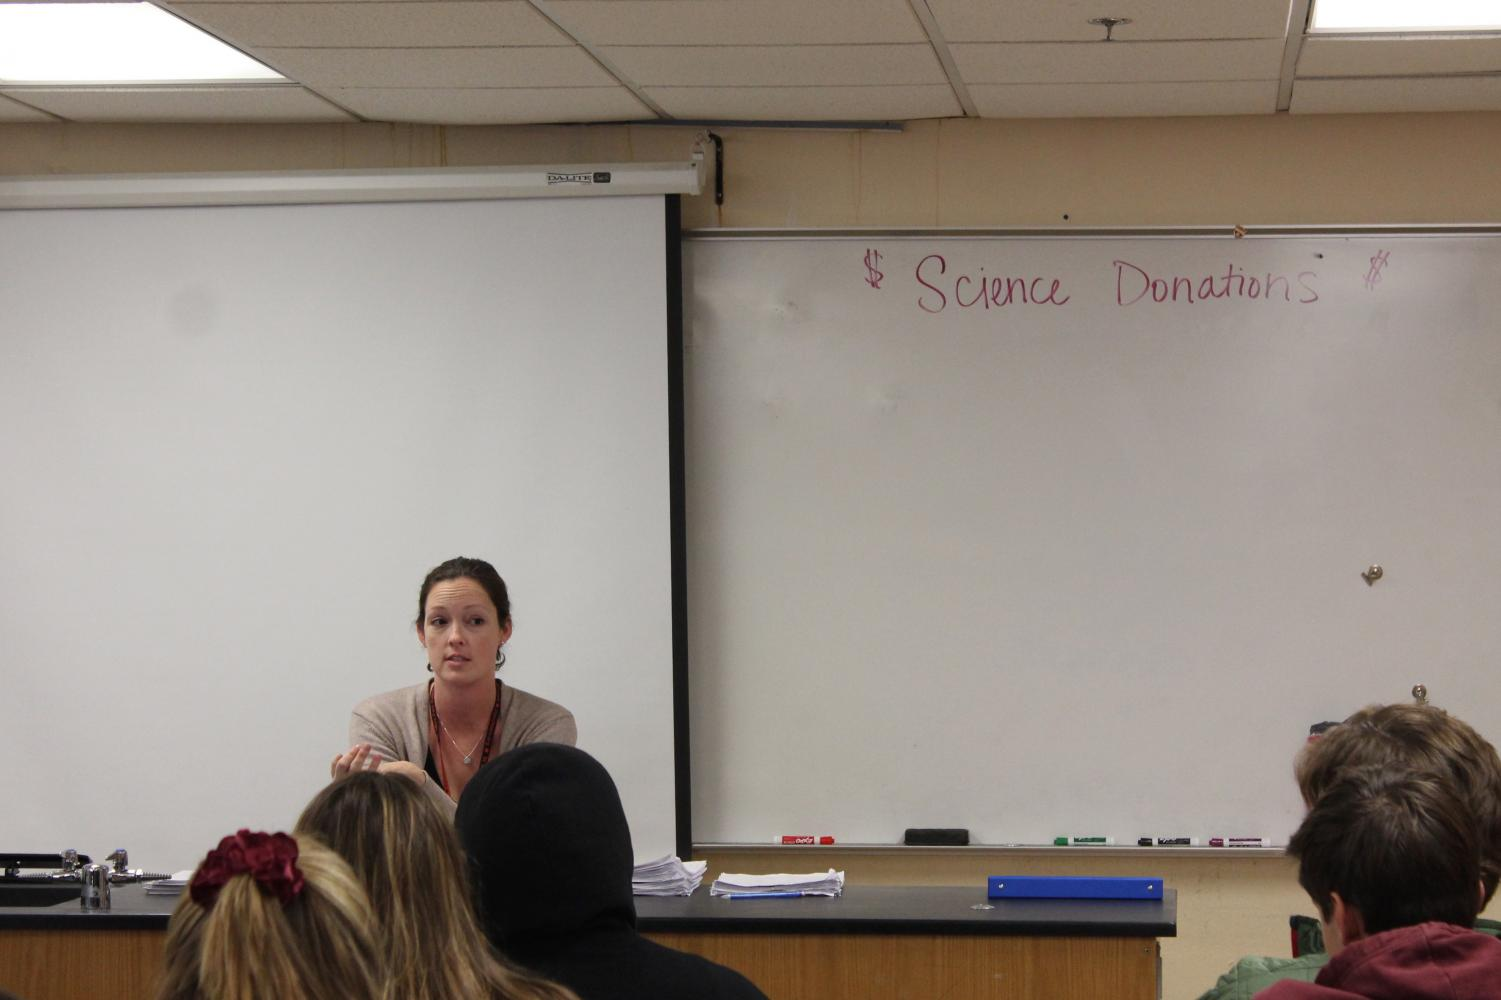 IB Biology teacher Julie Schilz teaches in a class on November 9. The science department accepts donations from students and their families to help fund the science program.